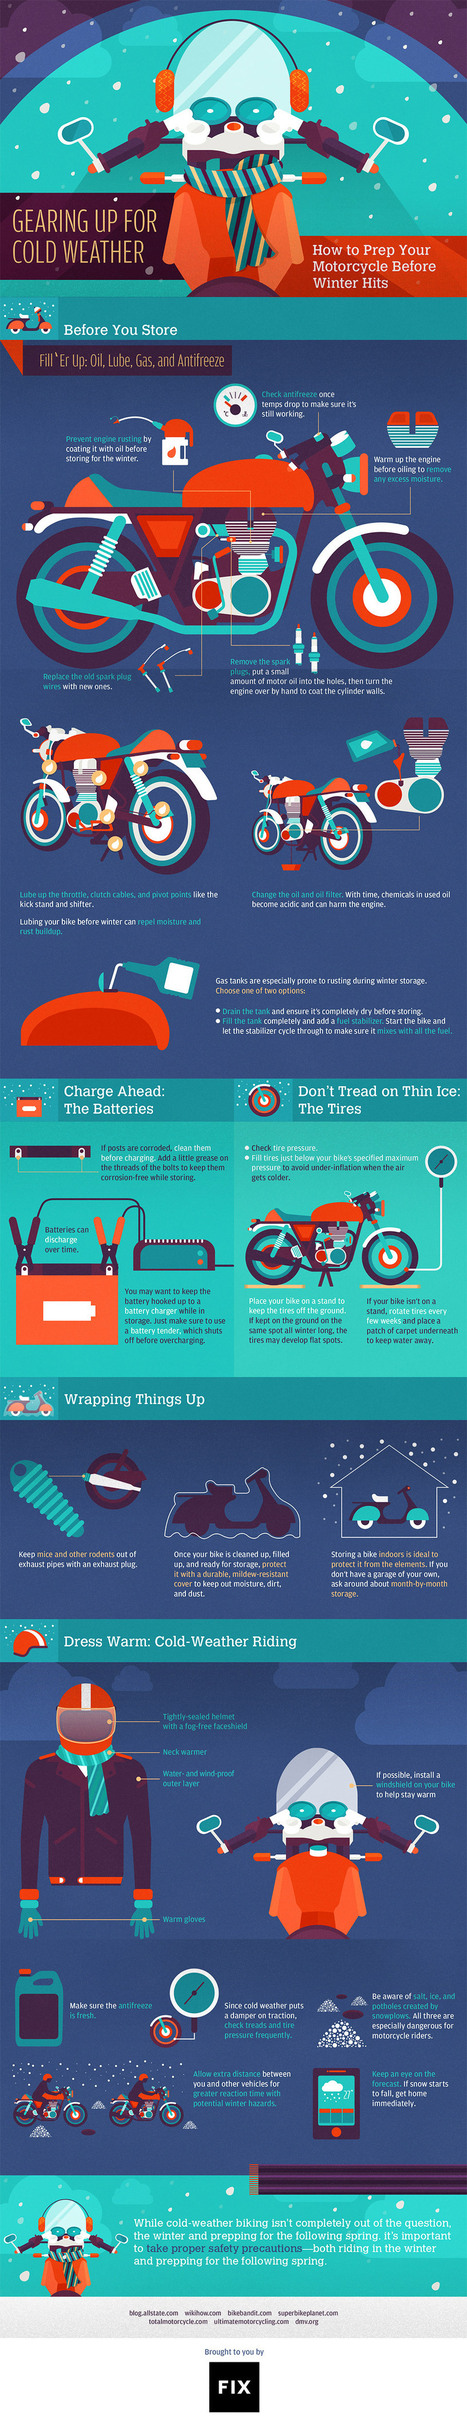 Prepare Your Motorcycle for Winter with Help from This Graphic   Bazaar   Scoop.it